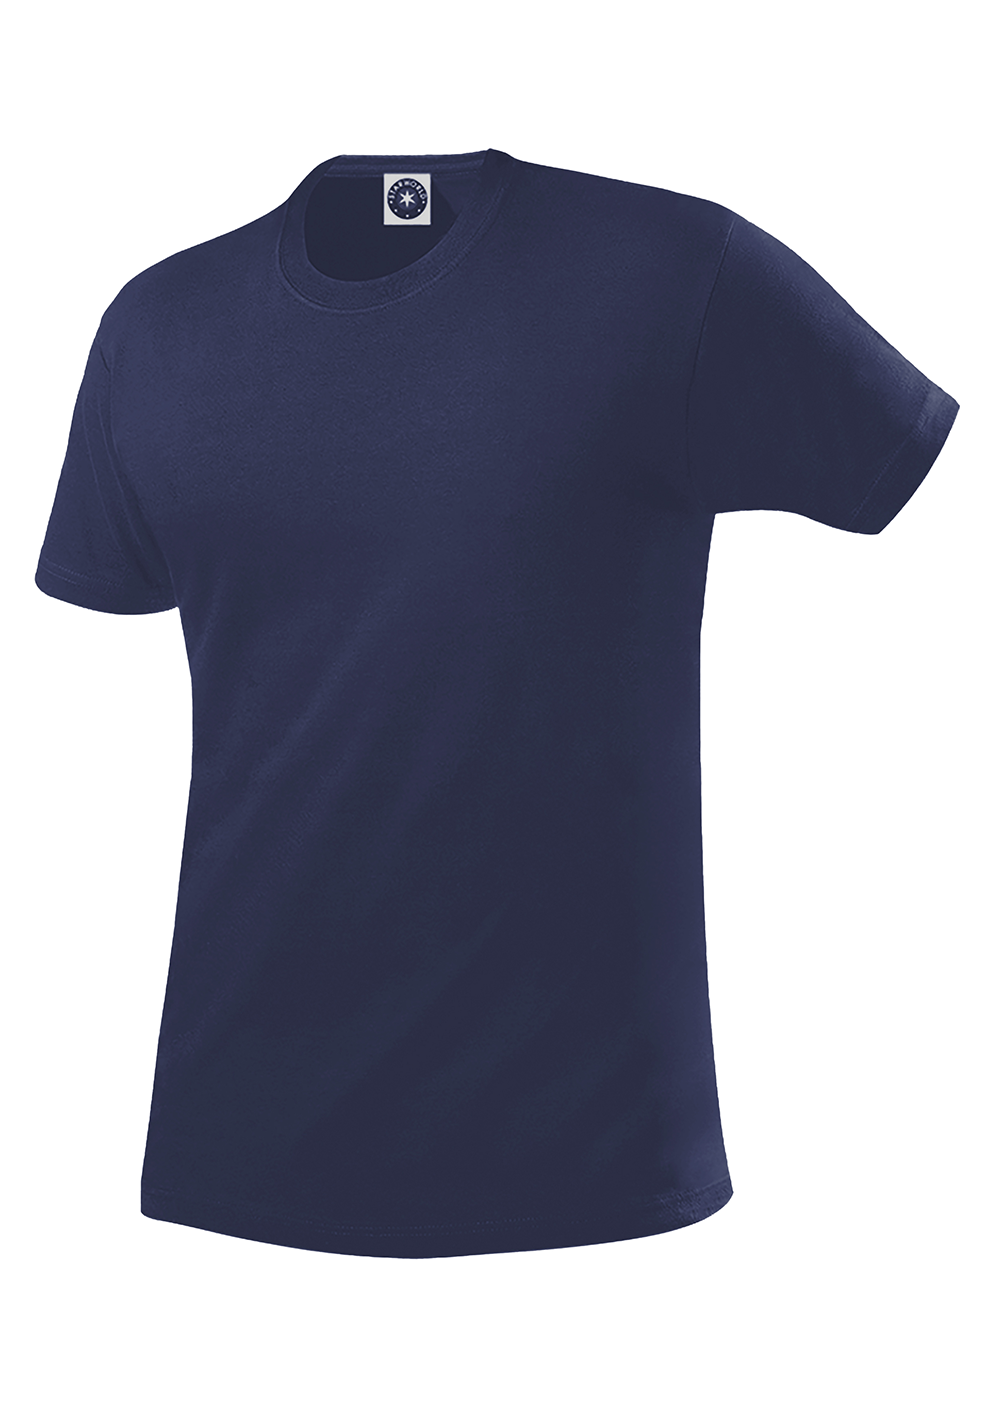 SW365N-12-NavyBlue.png